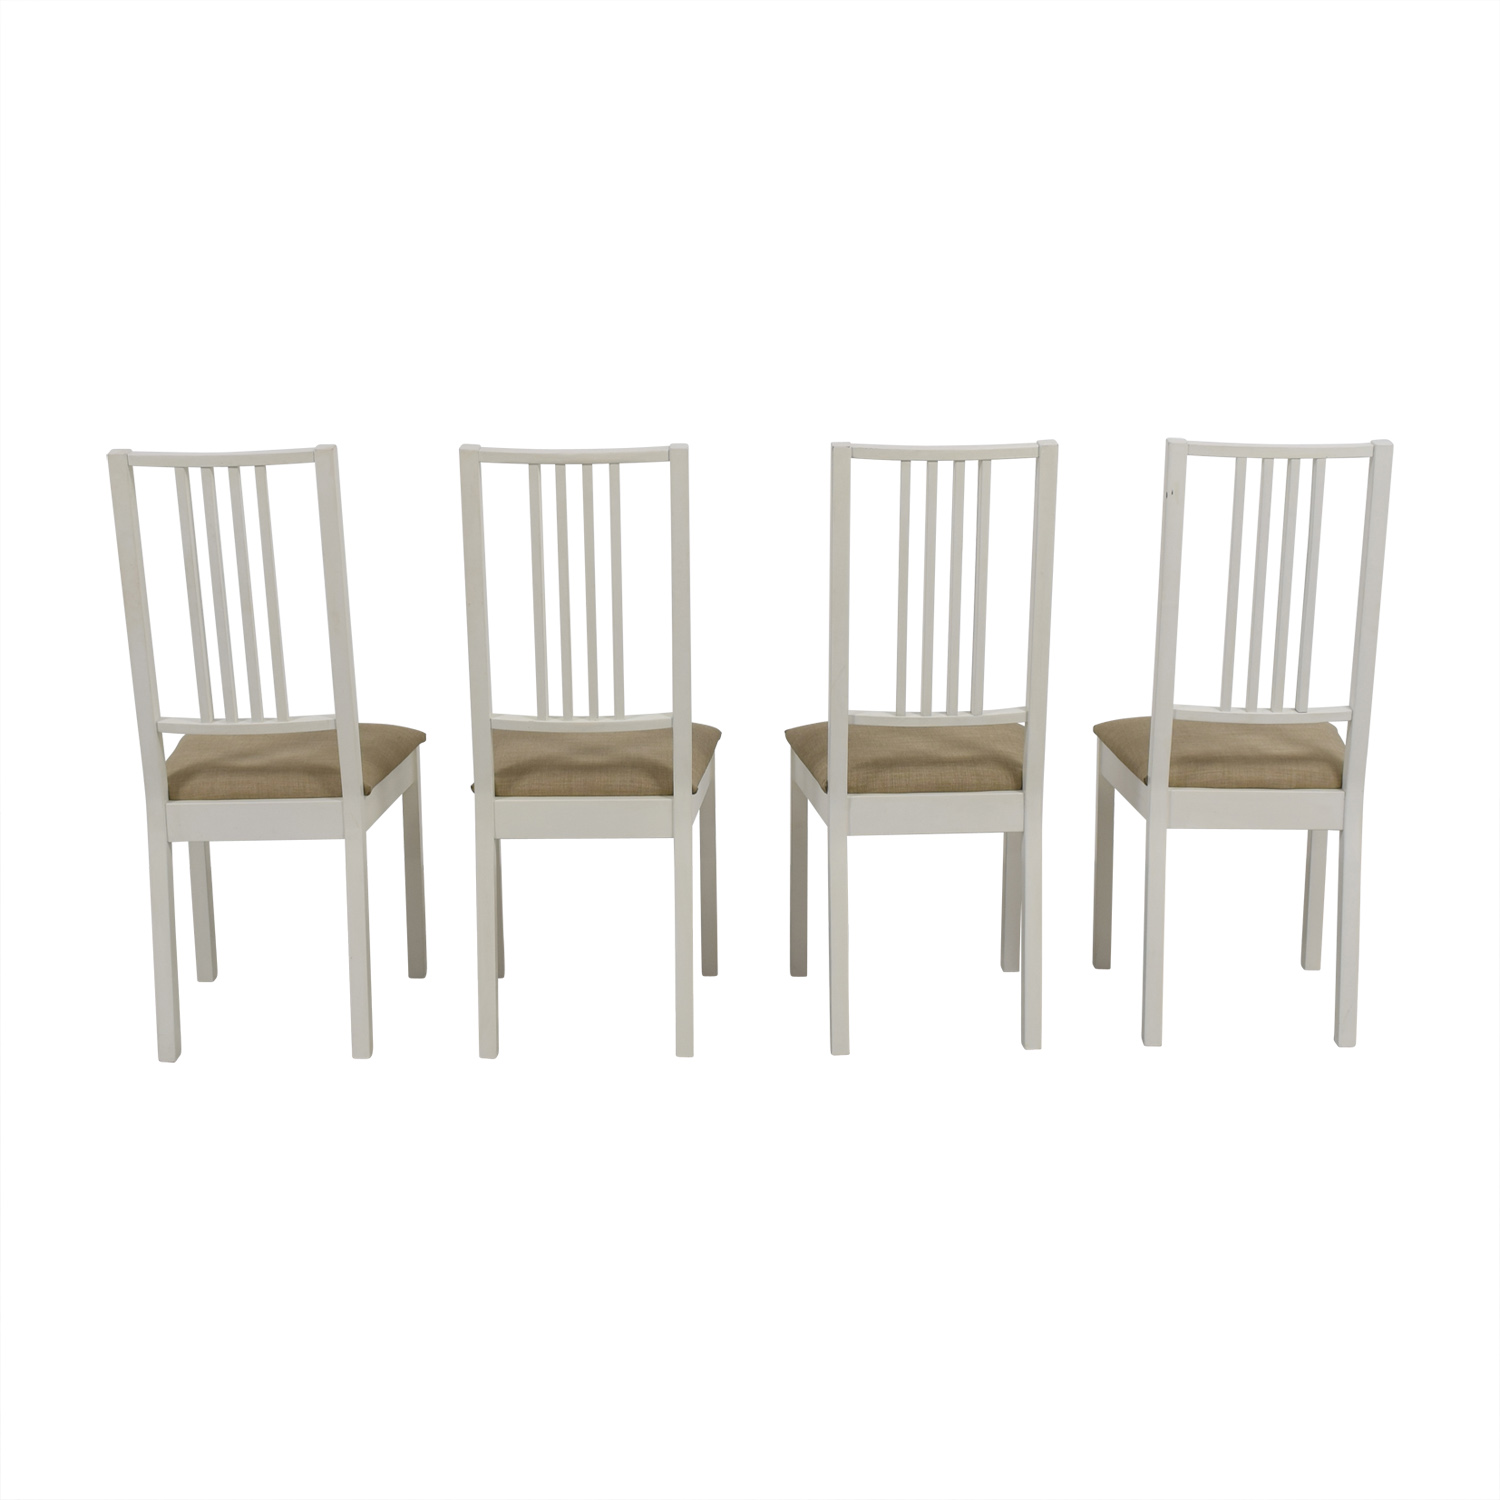 Ikea White With Tan Upholstered Dining Chairs